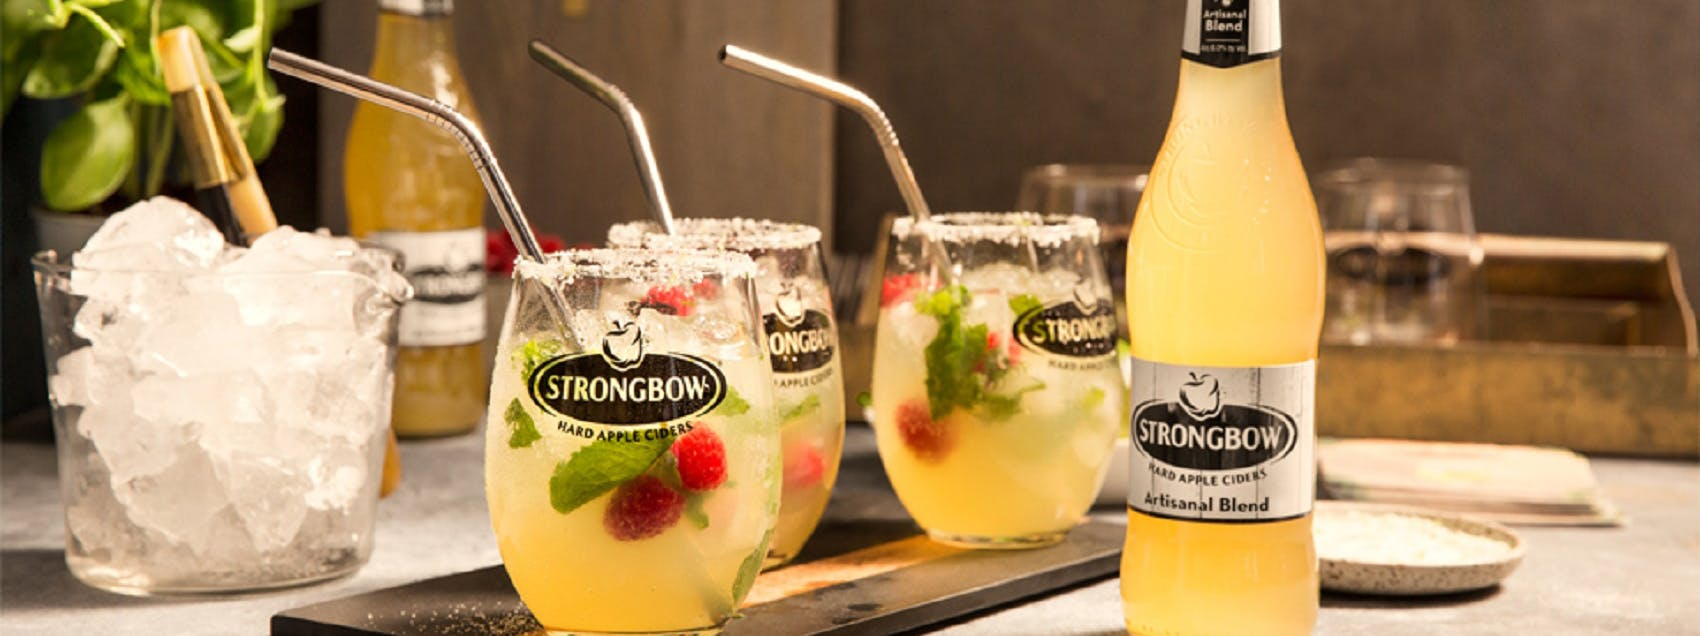 Strongbow Artisanal Blend Mojito